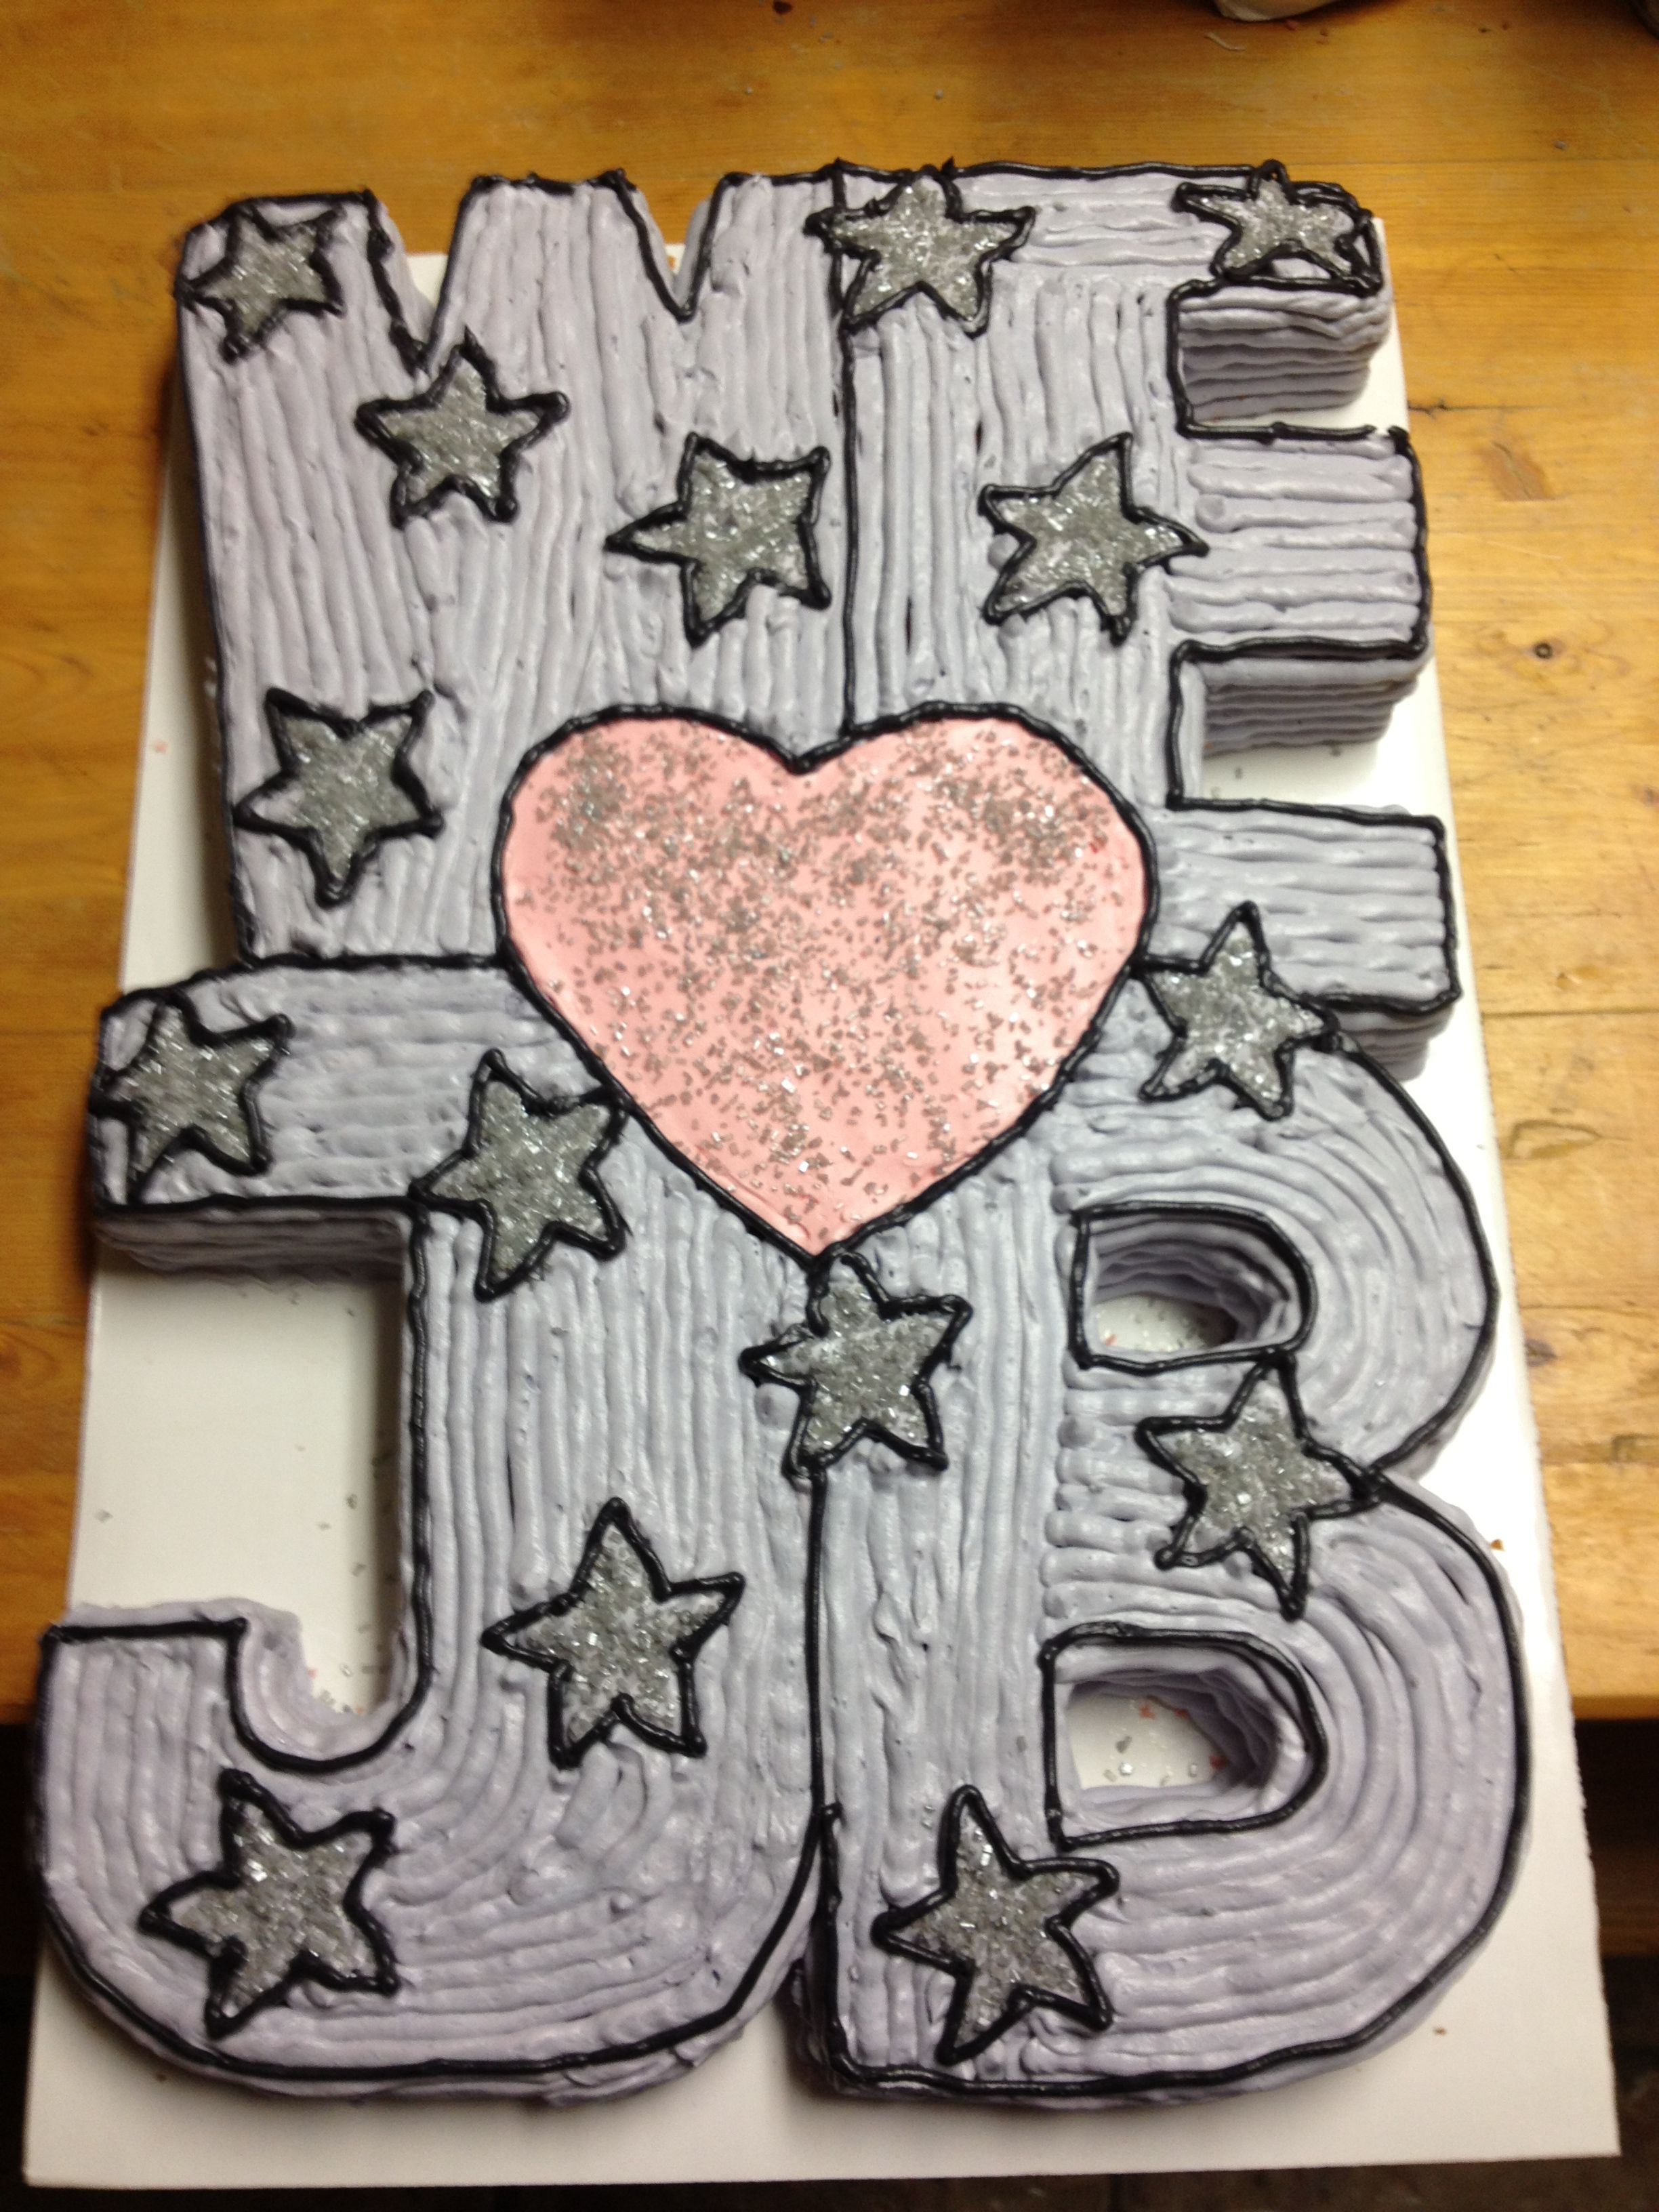 A cake for a Justin Bieber birthday party we love JB I cut this